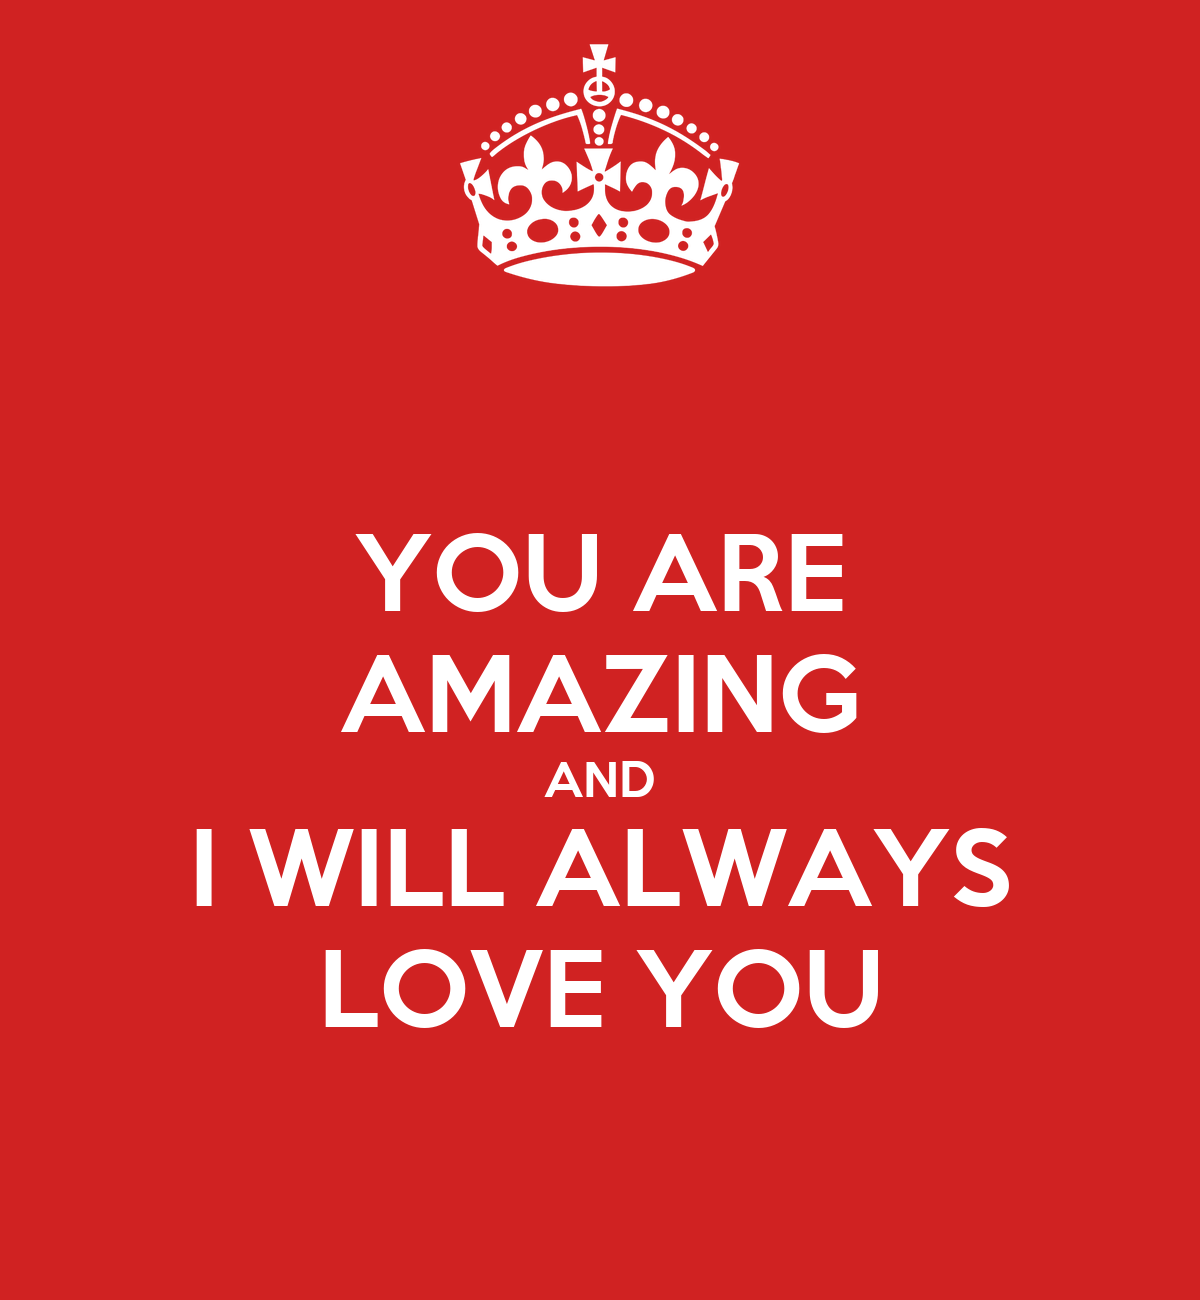 You Re Amazing Love: YOU ARE AMAZING AND I WILL ALWAYS LOVE YOU Poster